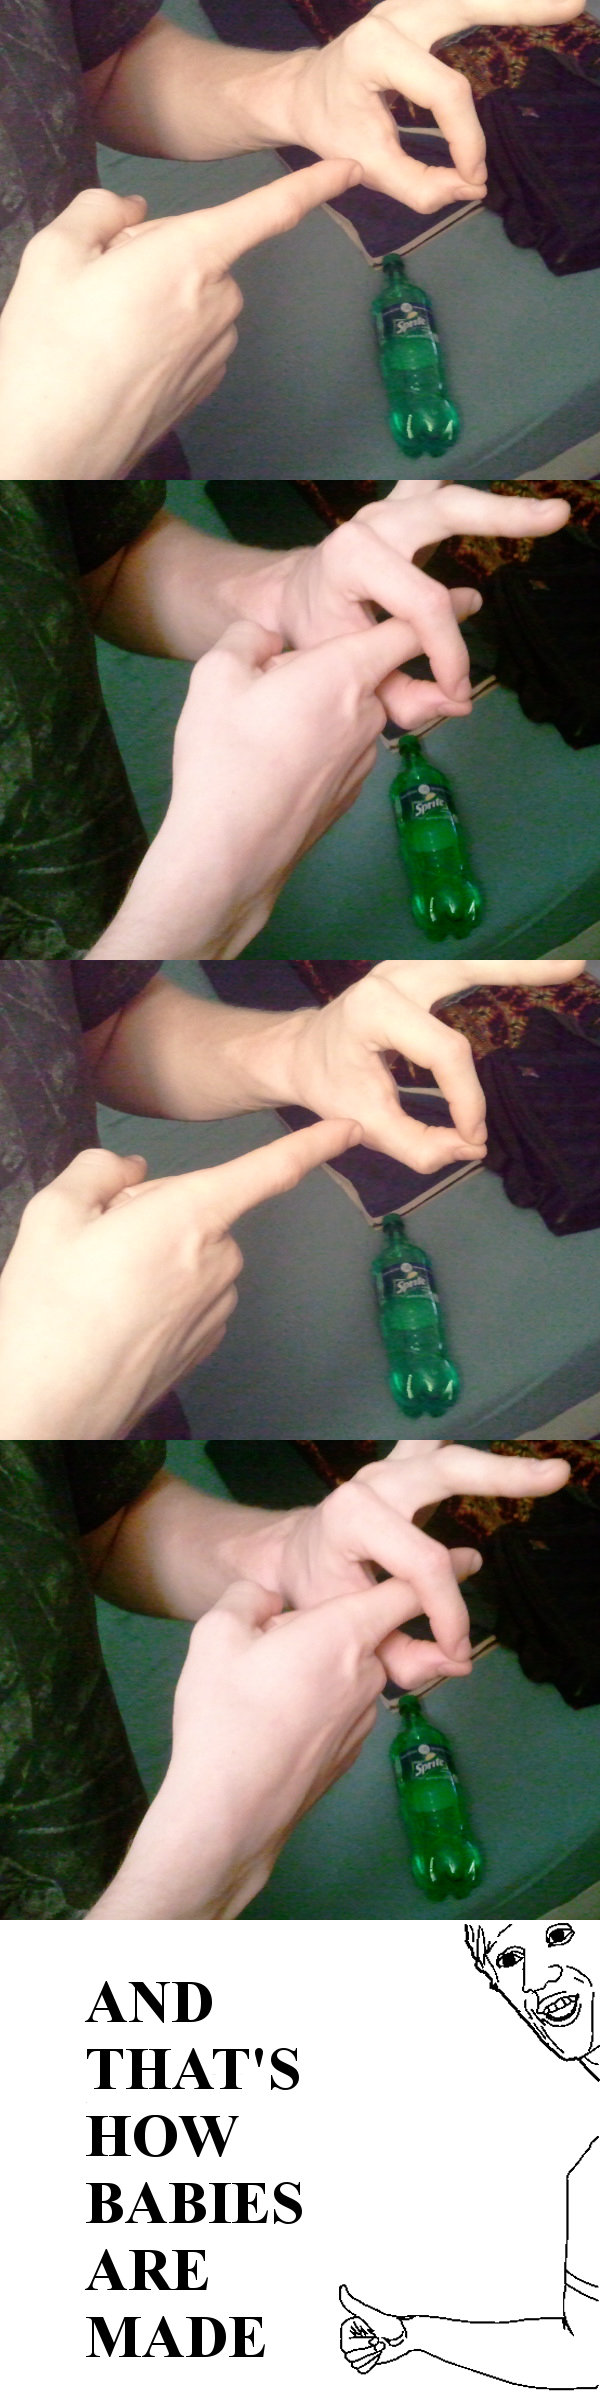 Thought you should know. Thought I would try again with a small change.... I couldn't stop looking at the Sprite-Bottle